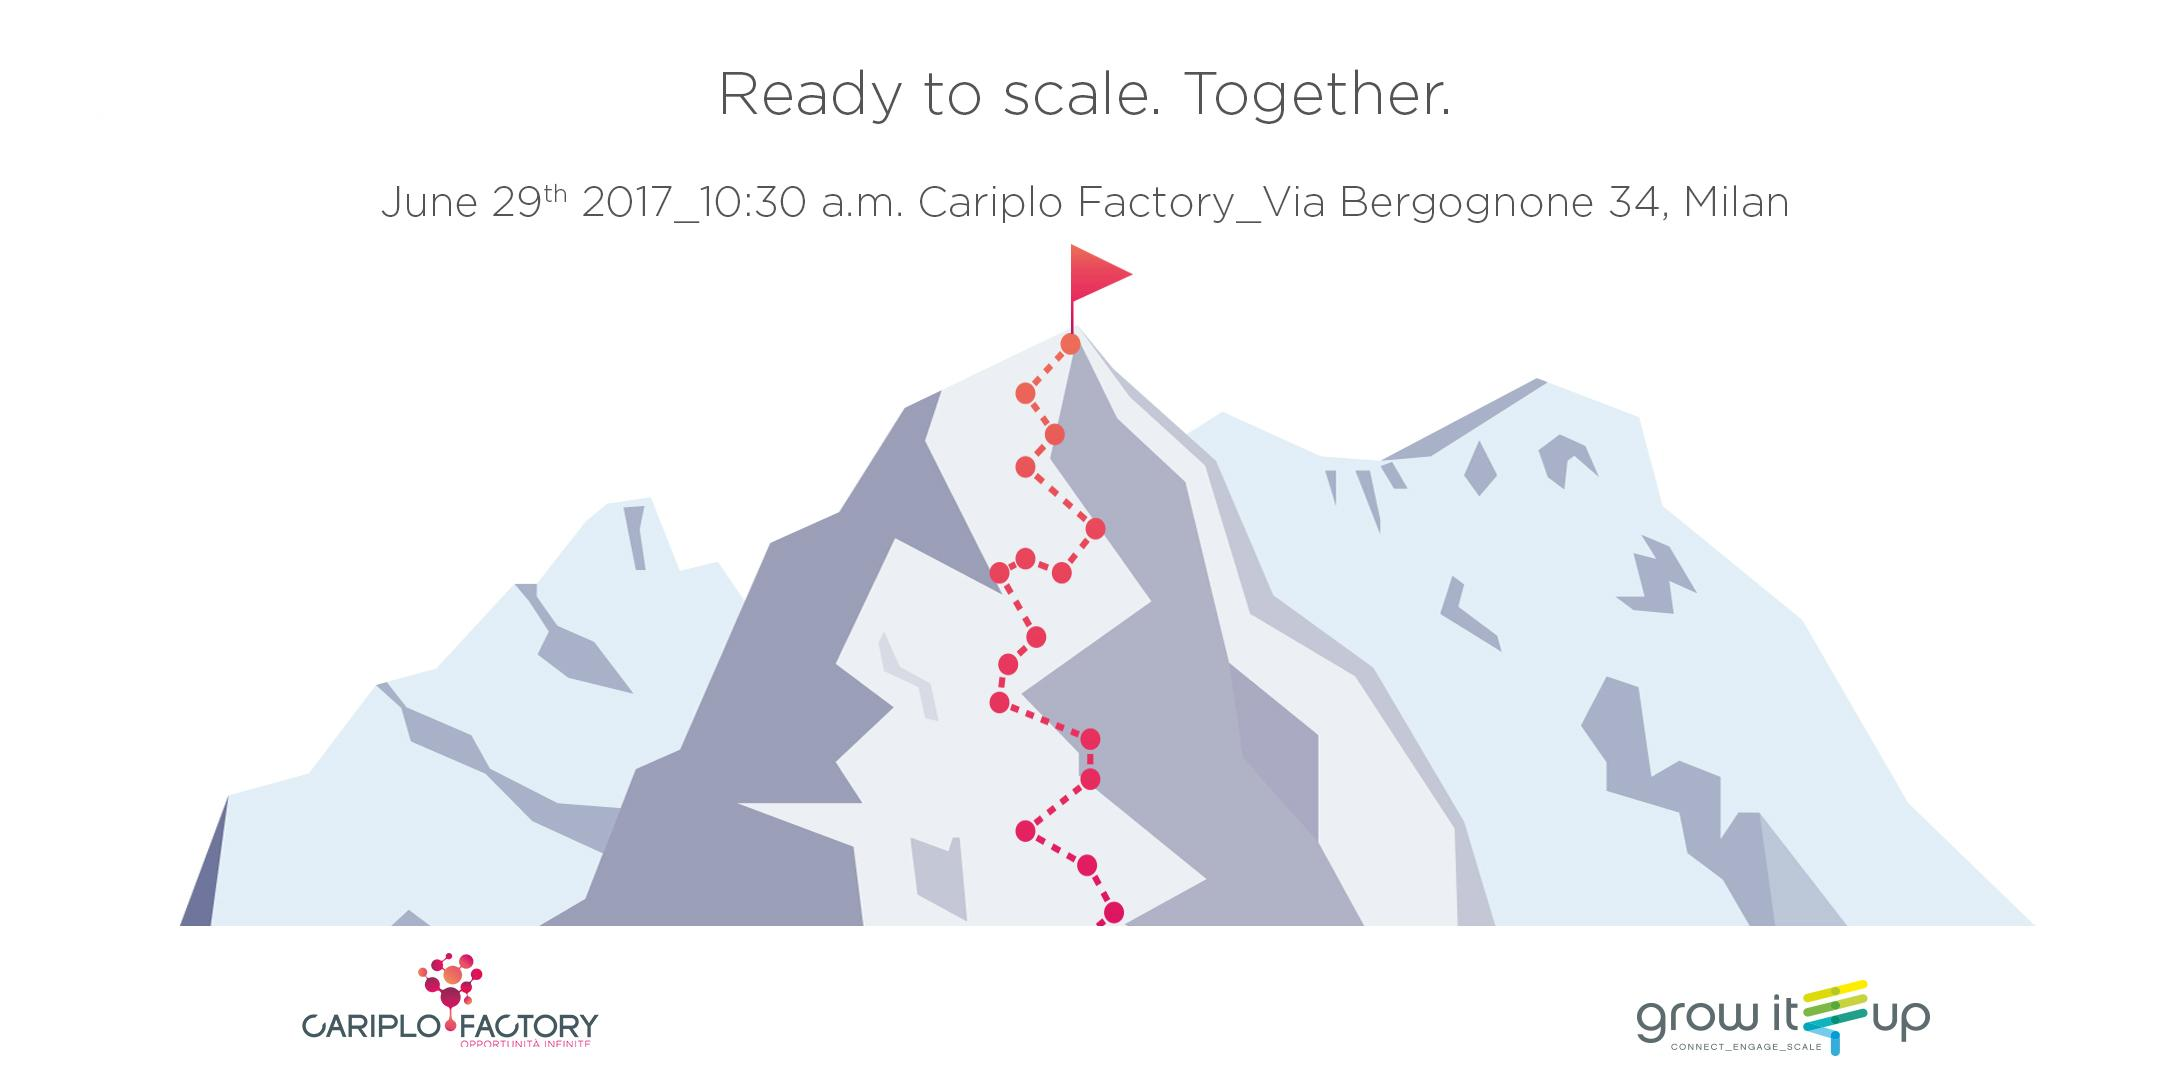 Ready to scale. Together.